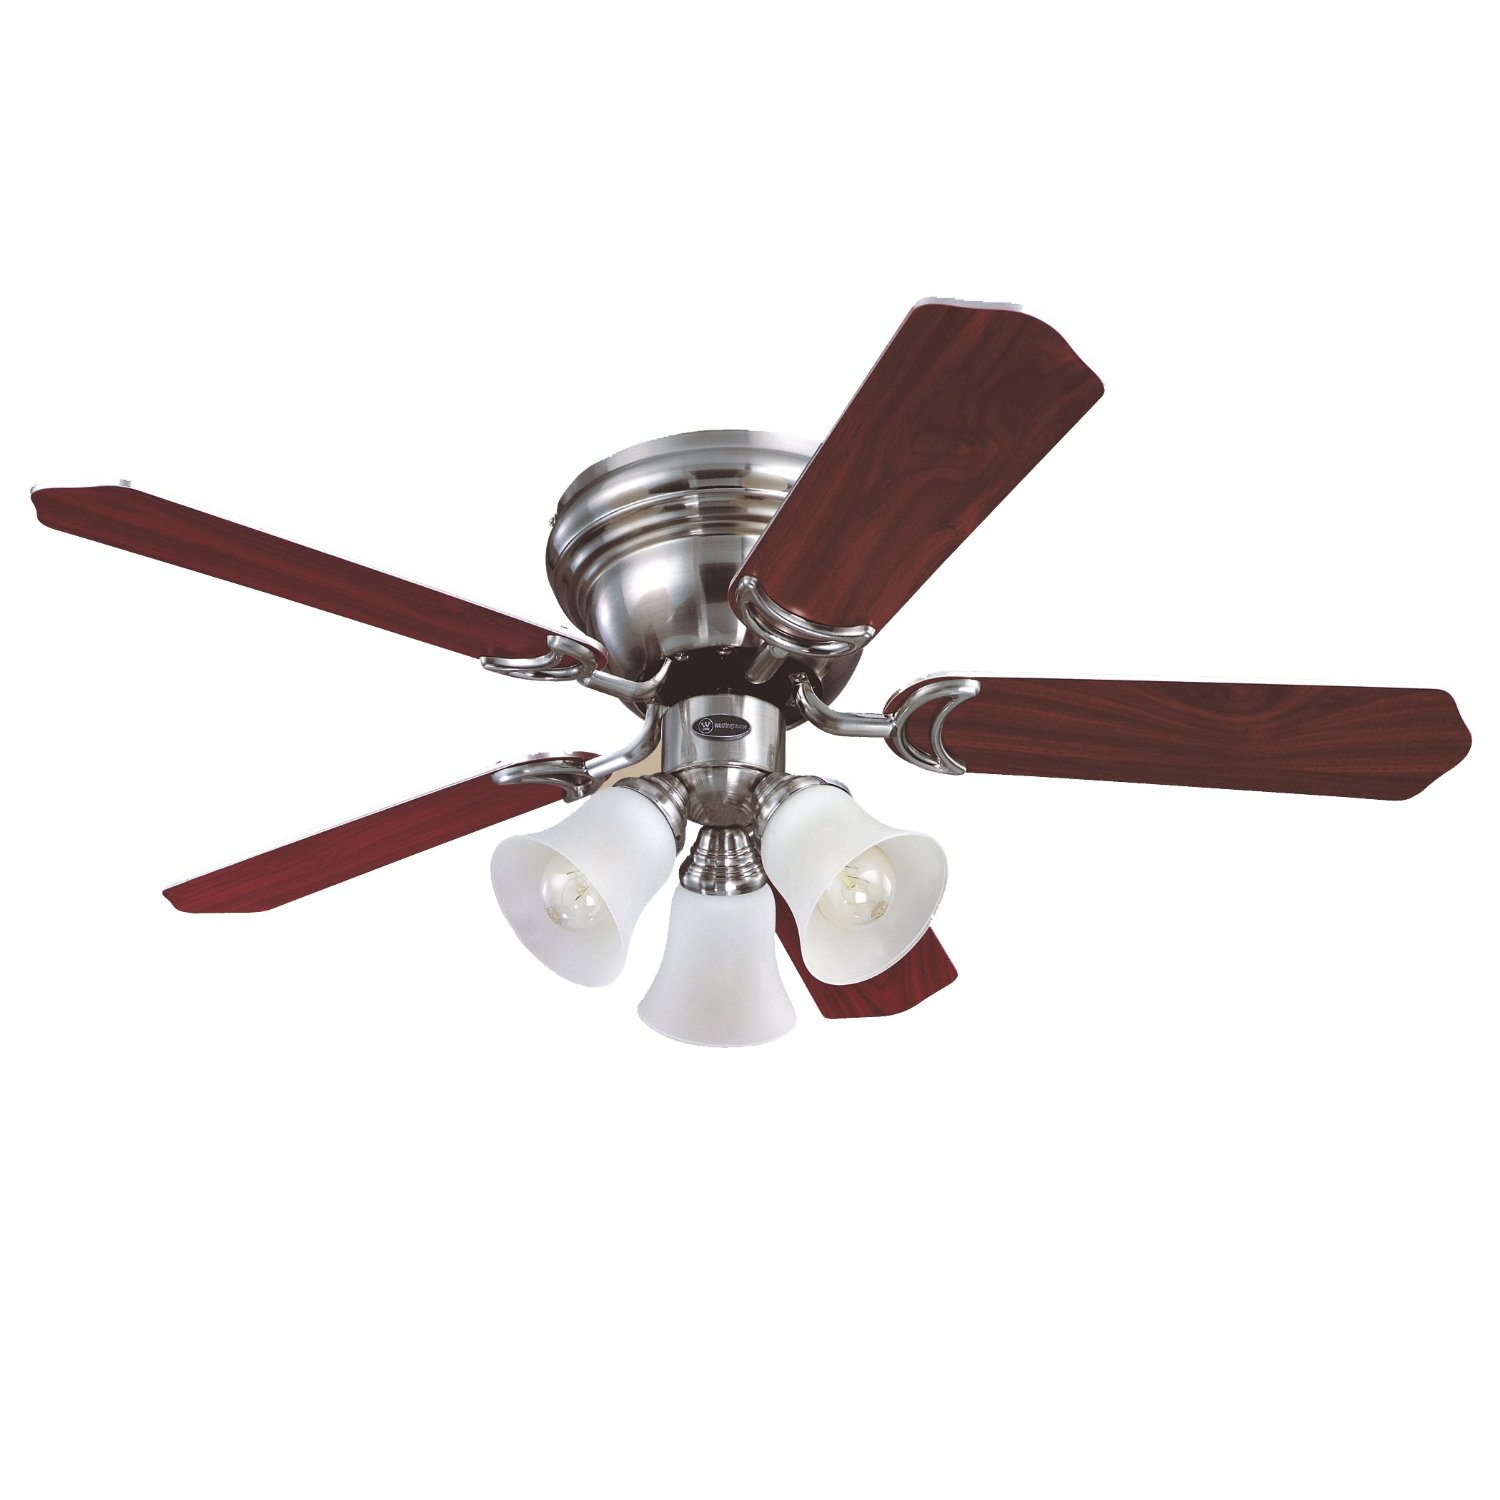 5 Best Low Profile Ceiling Fans | Tool Box